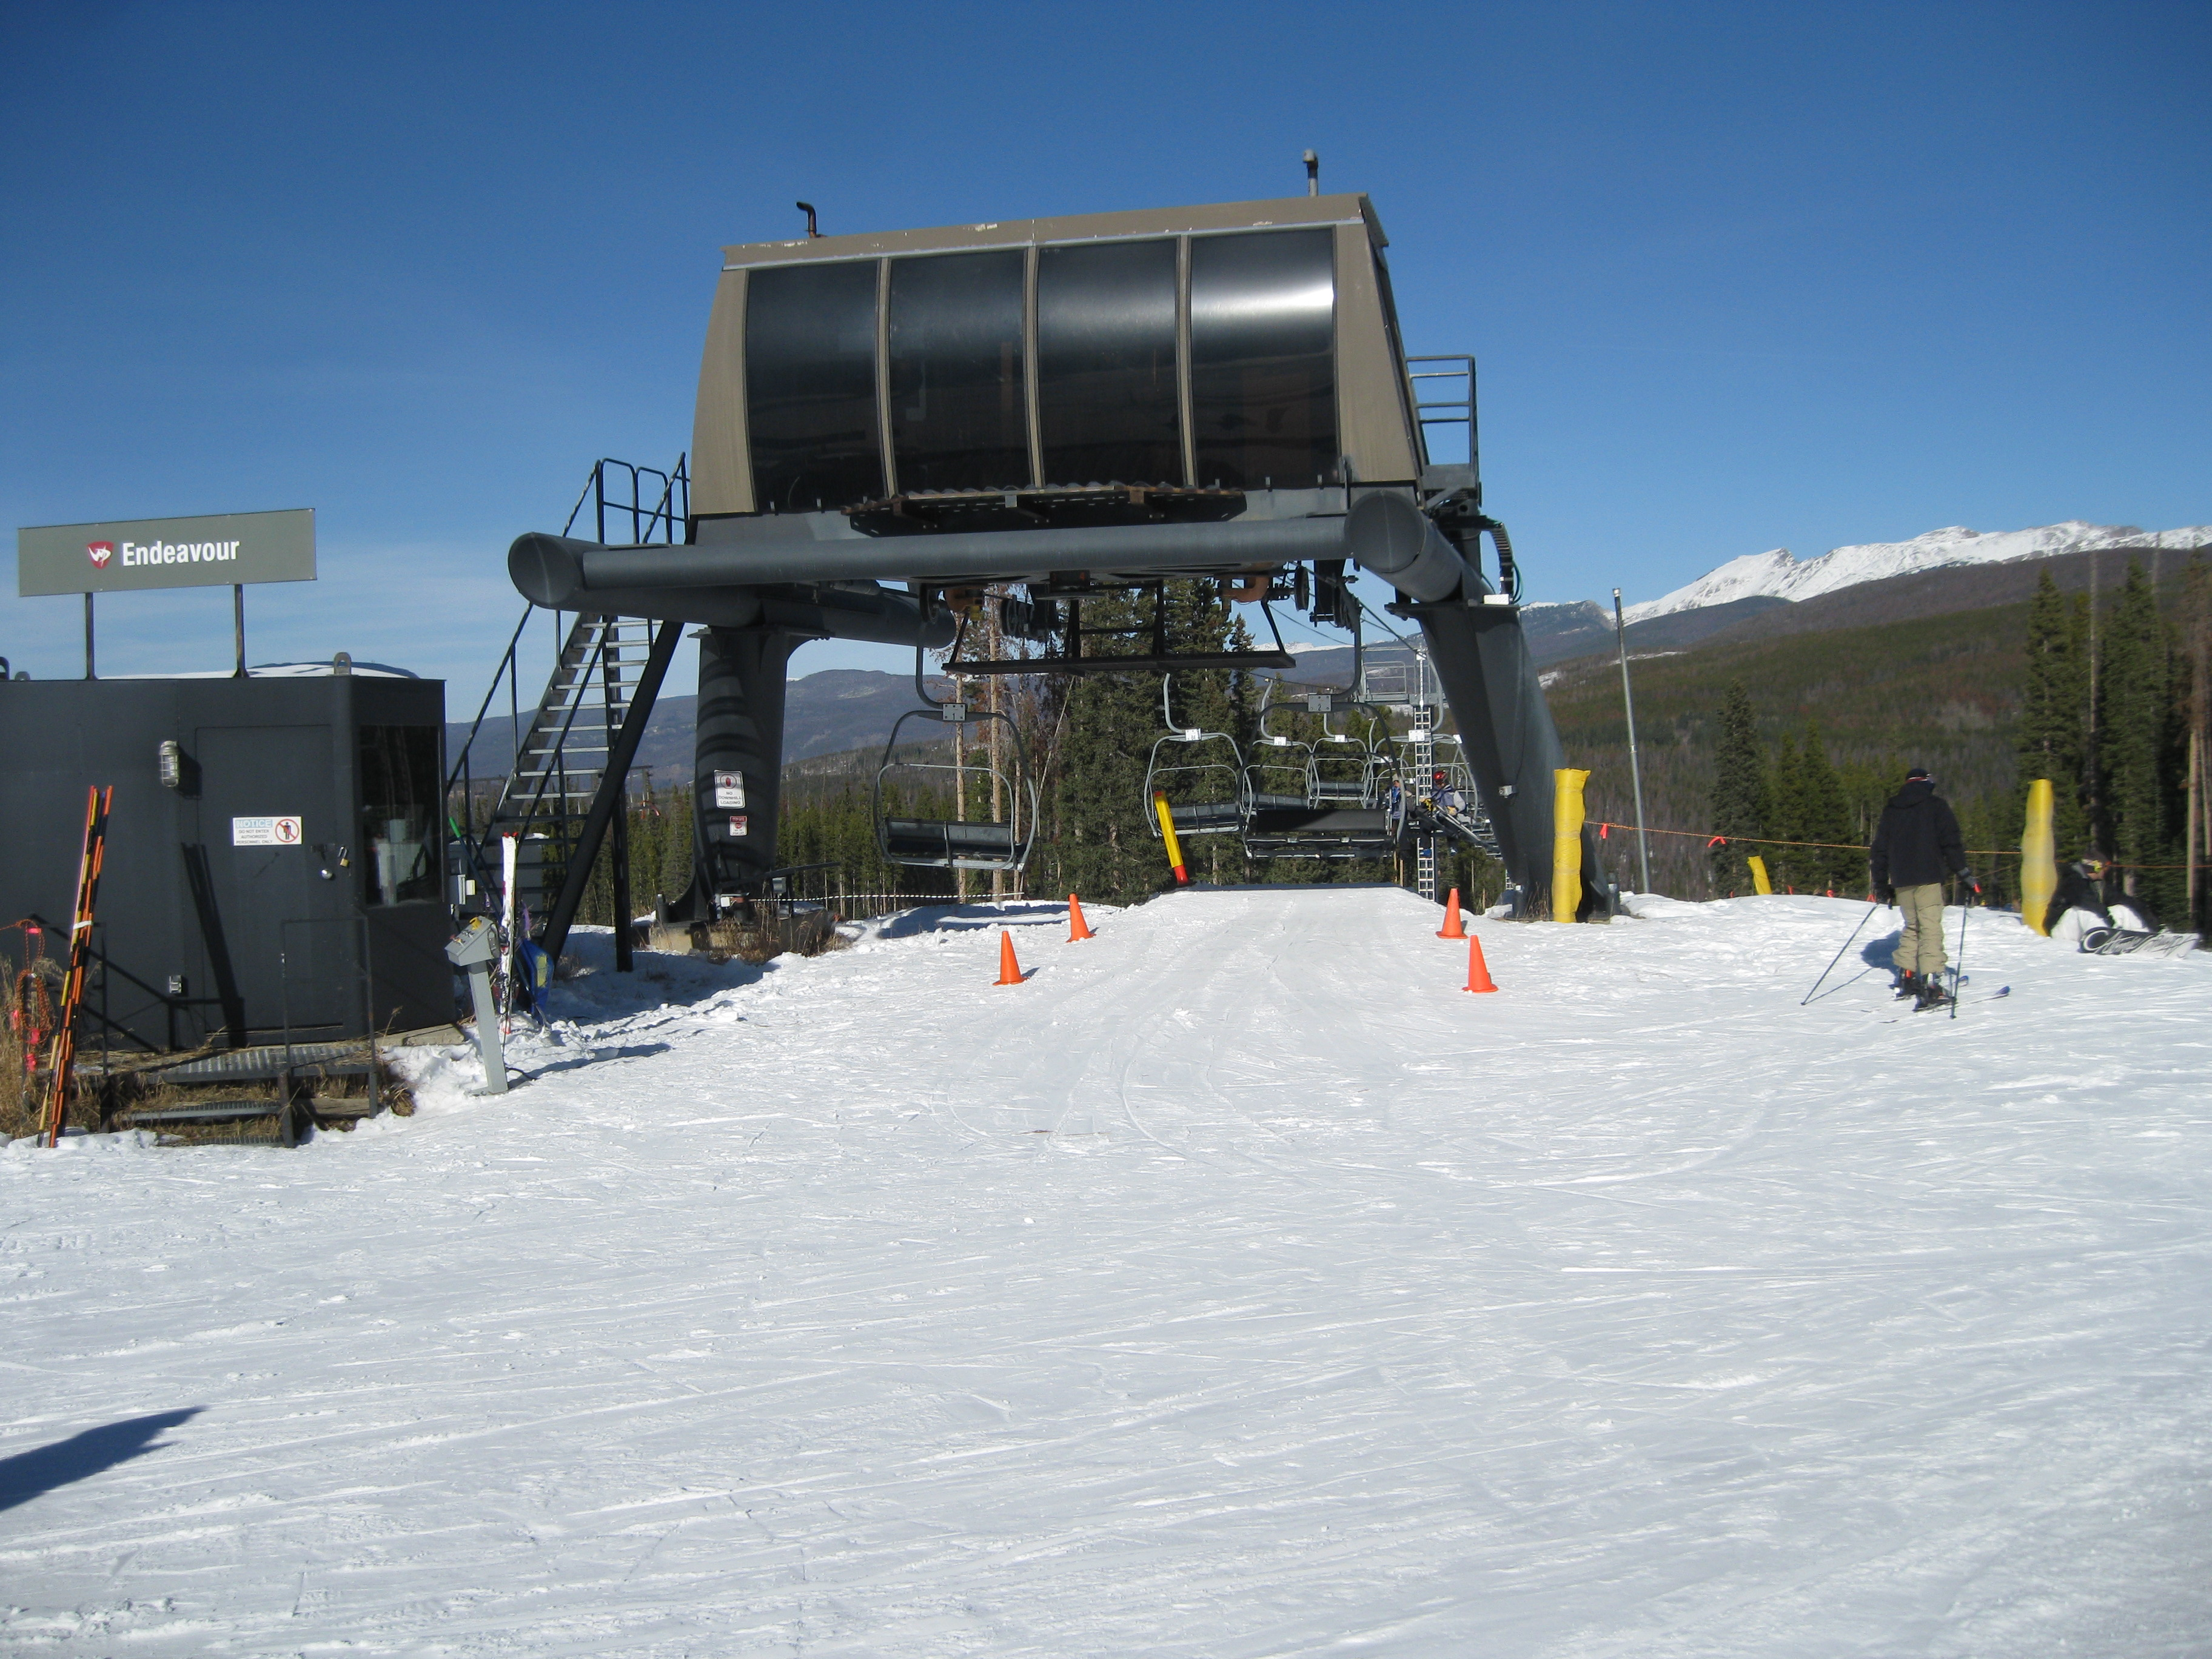 How to Get Off a Ski Lift with a Snowboard How to Get Off a Ski Lift with a Snowboard new foto